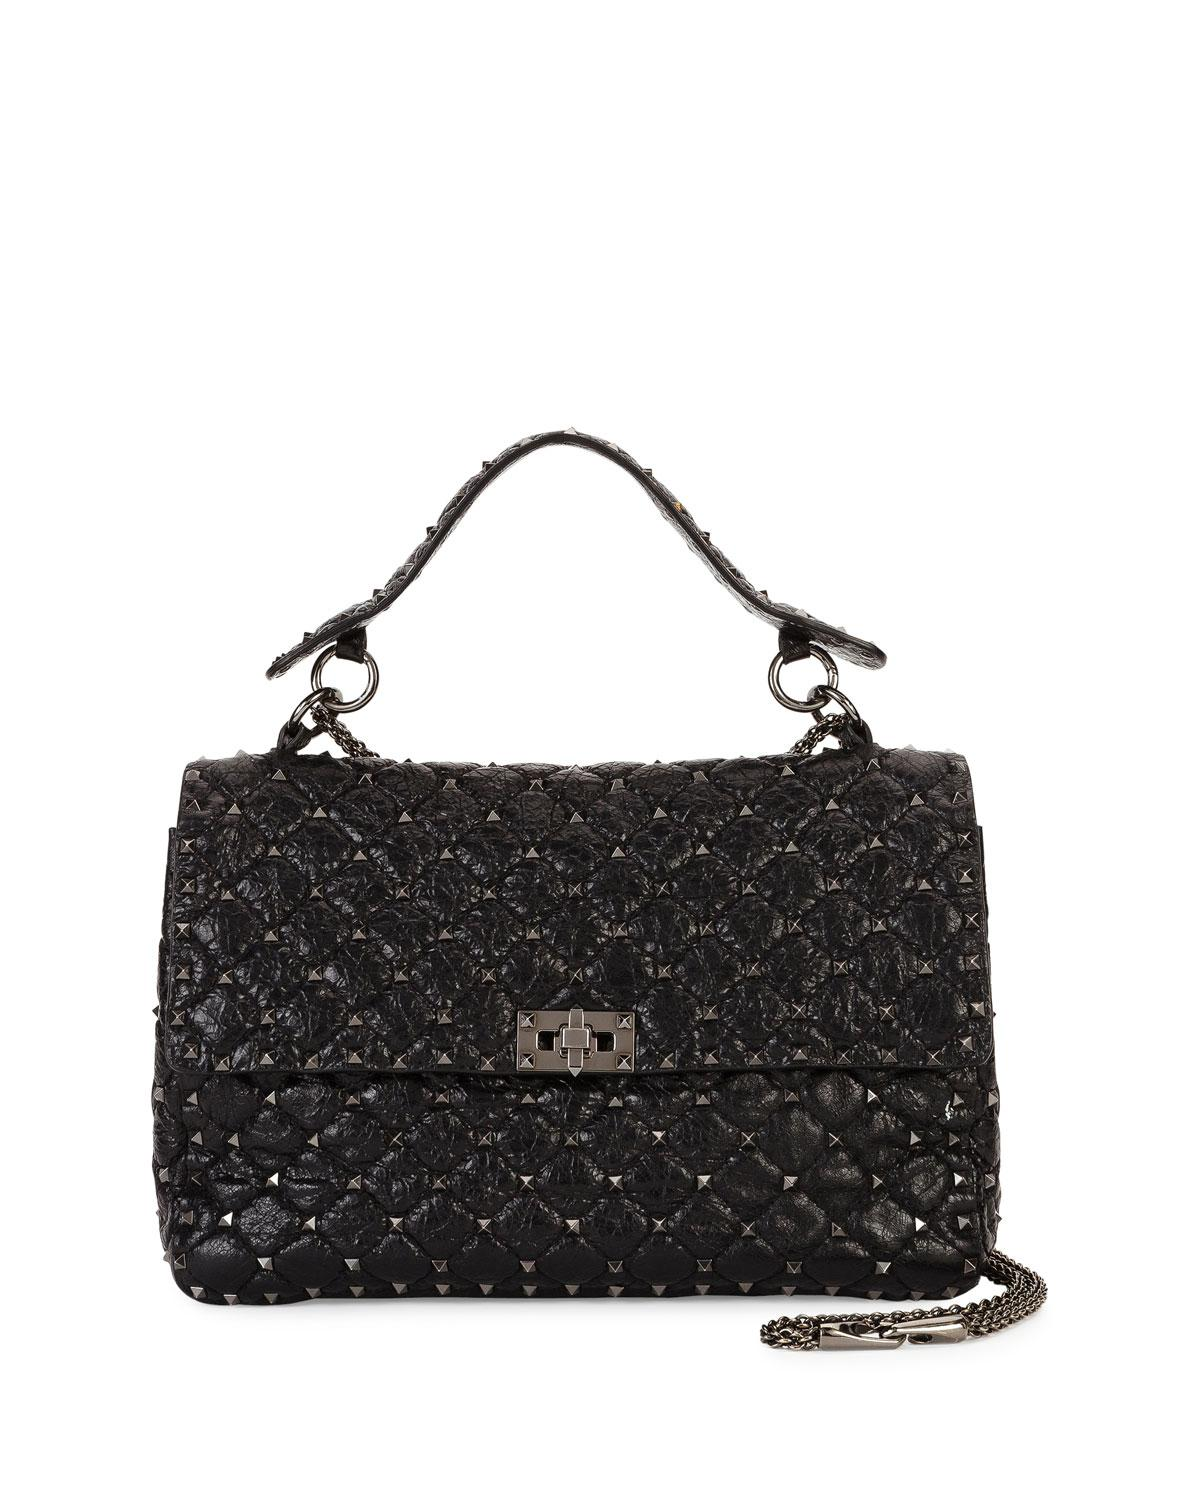 4a5a3a6128d3 Lyst - Valentino Rockstud Spike Large Chain Bag in Black